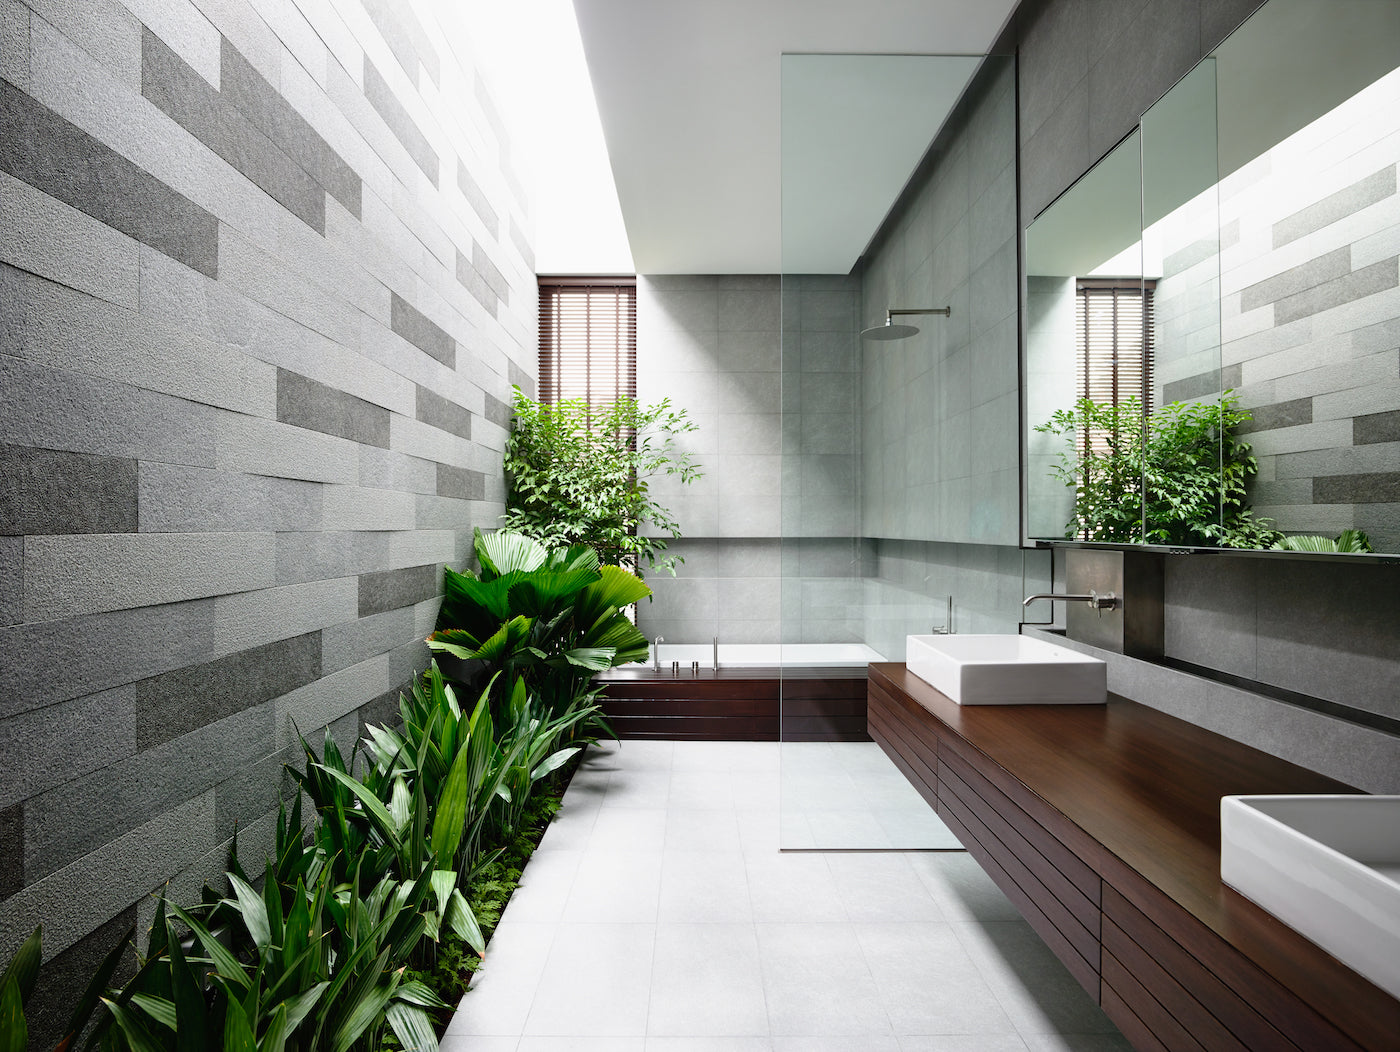 Green plants not only improve the air in interiors, but actually serve as decorative elements, too. This modern spacious bathroom is visually complemented by a mix of different types of leaves – big round, small ones, and those shaped like lancets.